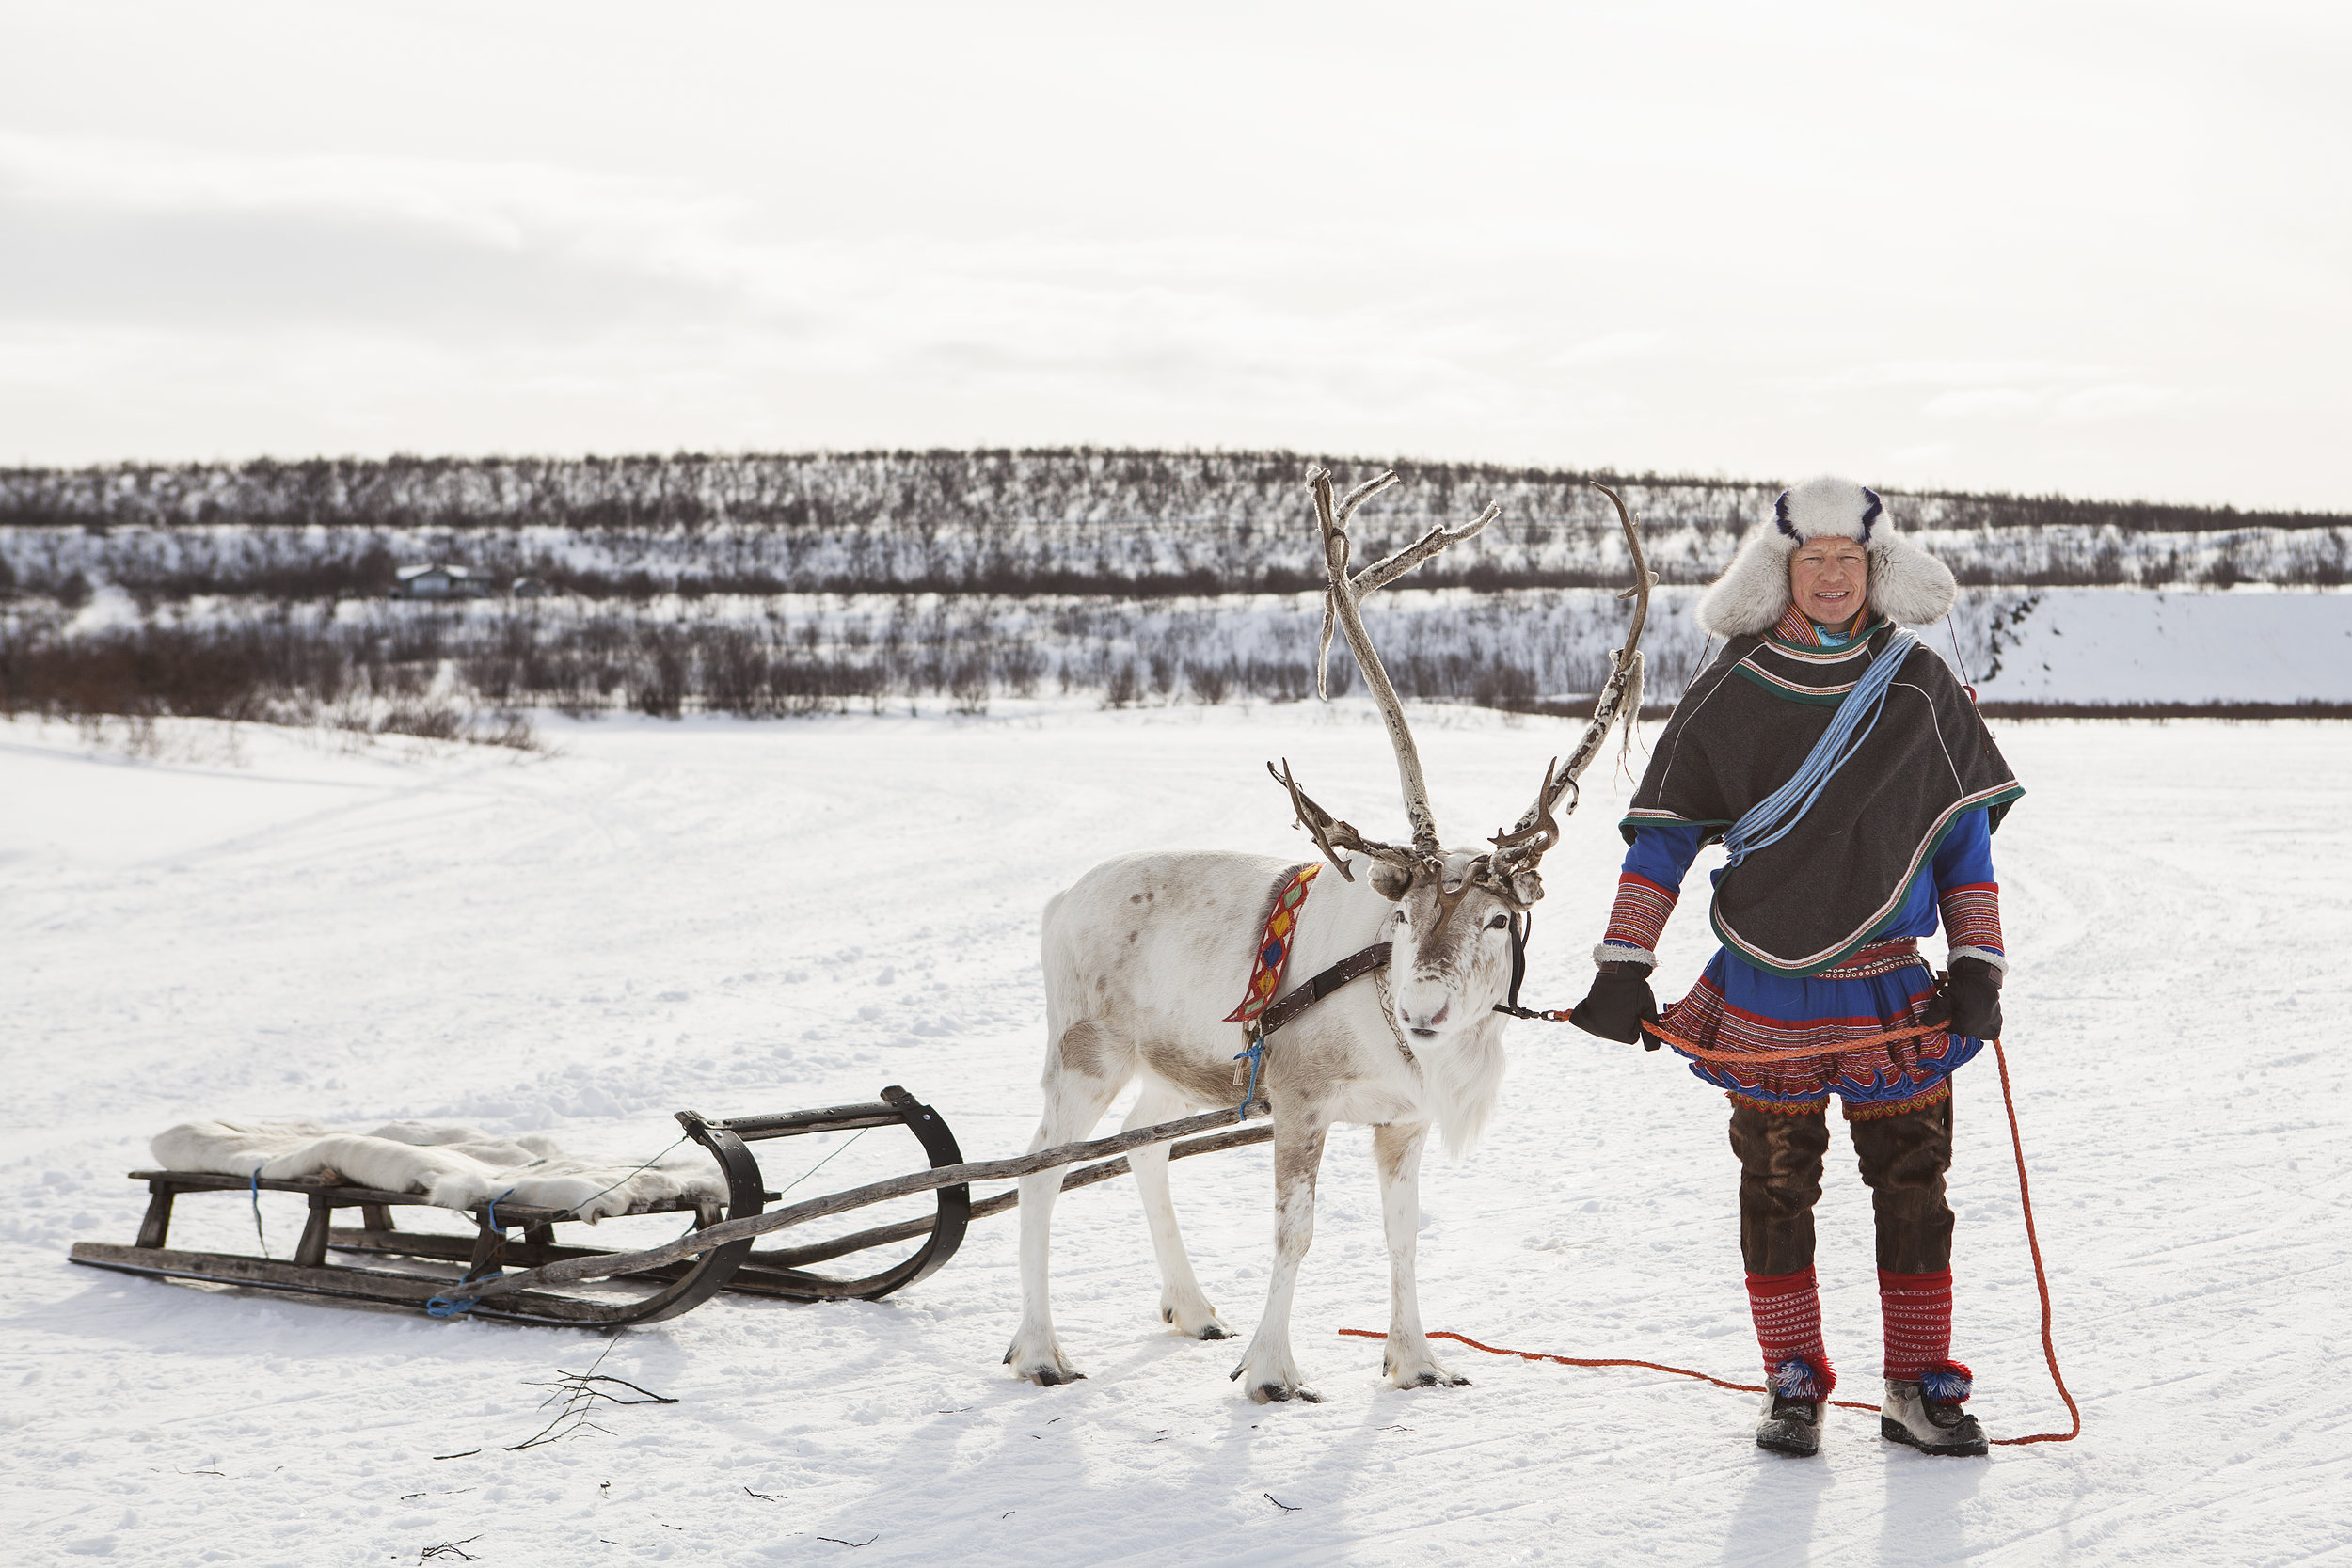 EXPLORE THE FROZEN LANDSCAPE AND THE SAMI CULTURE - Do you want to get an insight of Sami culture and history and also want to experience the mighty mountain plateau winter time? We will take you to the Sami town of Kautokeino.